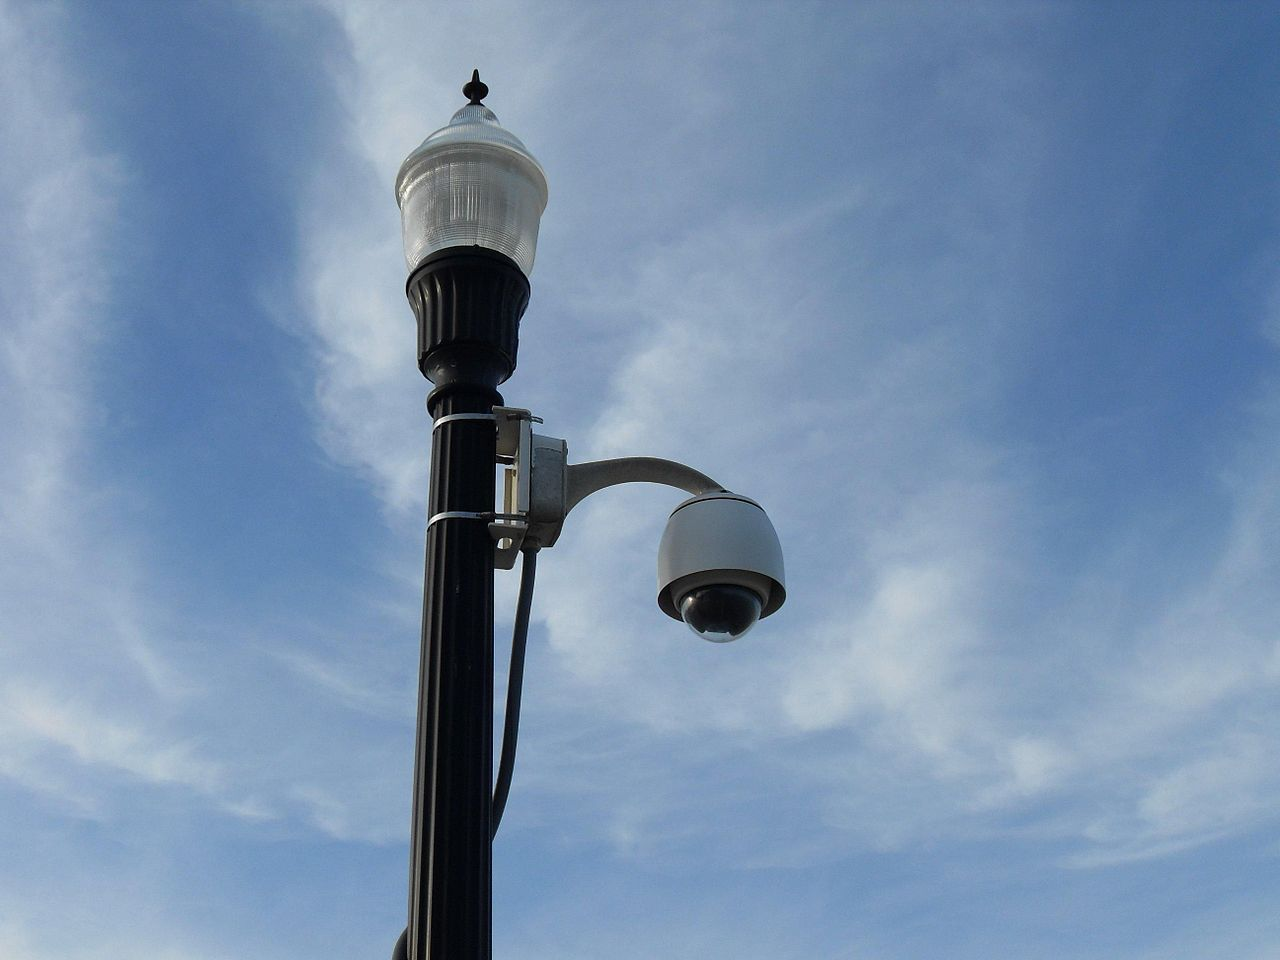 FileAntique street l& iron l&.jpg & File:Antique street lamp iron lamp.jpg - Wikimedia Commons azcodes.com